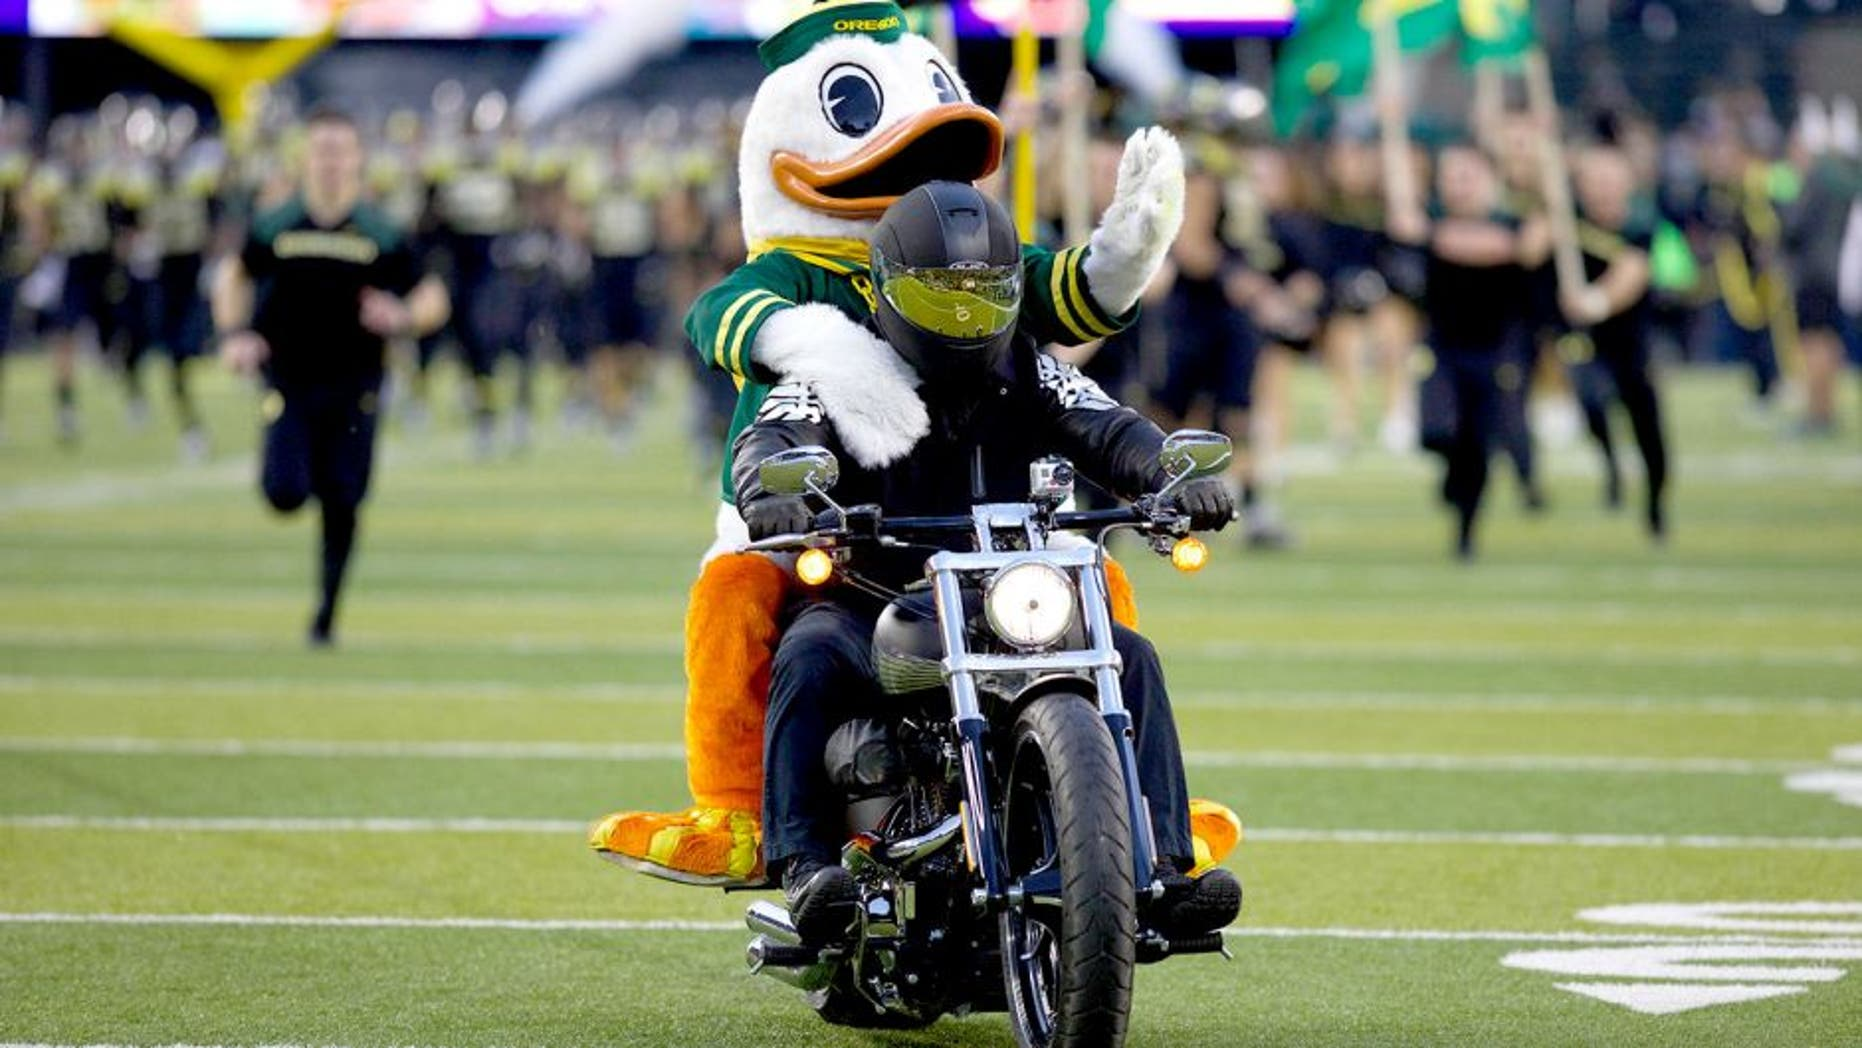 Nov 1, 2014; Eugene, OR, USA; Oregon Ducks mascot rides on a motorcycle before the start of the game against the Stanford Cardinal at Autzen Stadium. Mandatory Credit: Scott Olmos-USA TODAY Sports